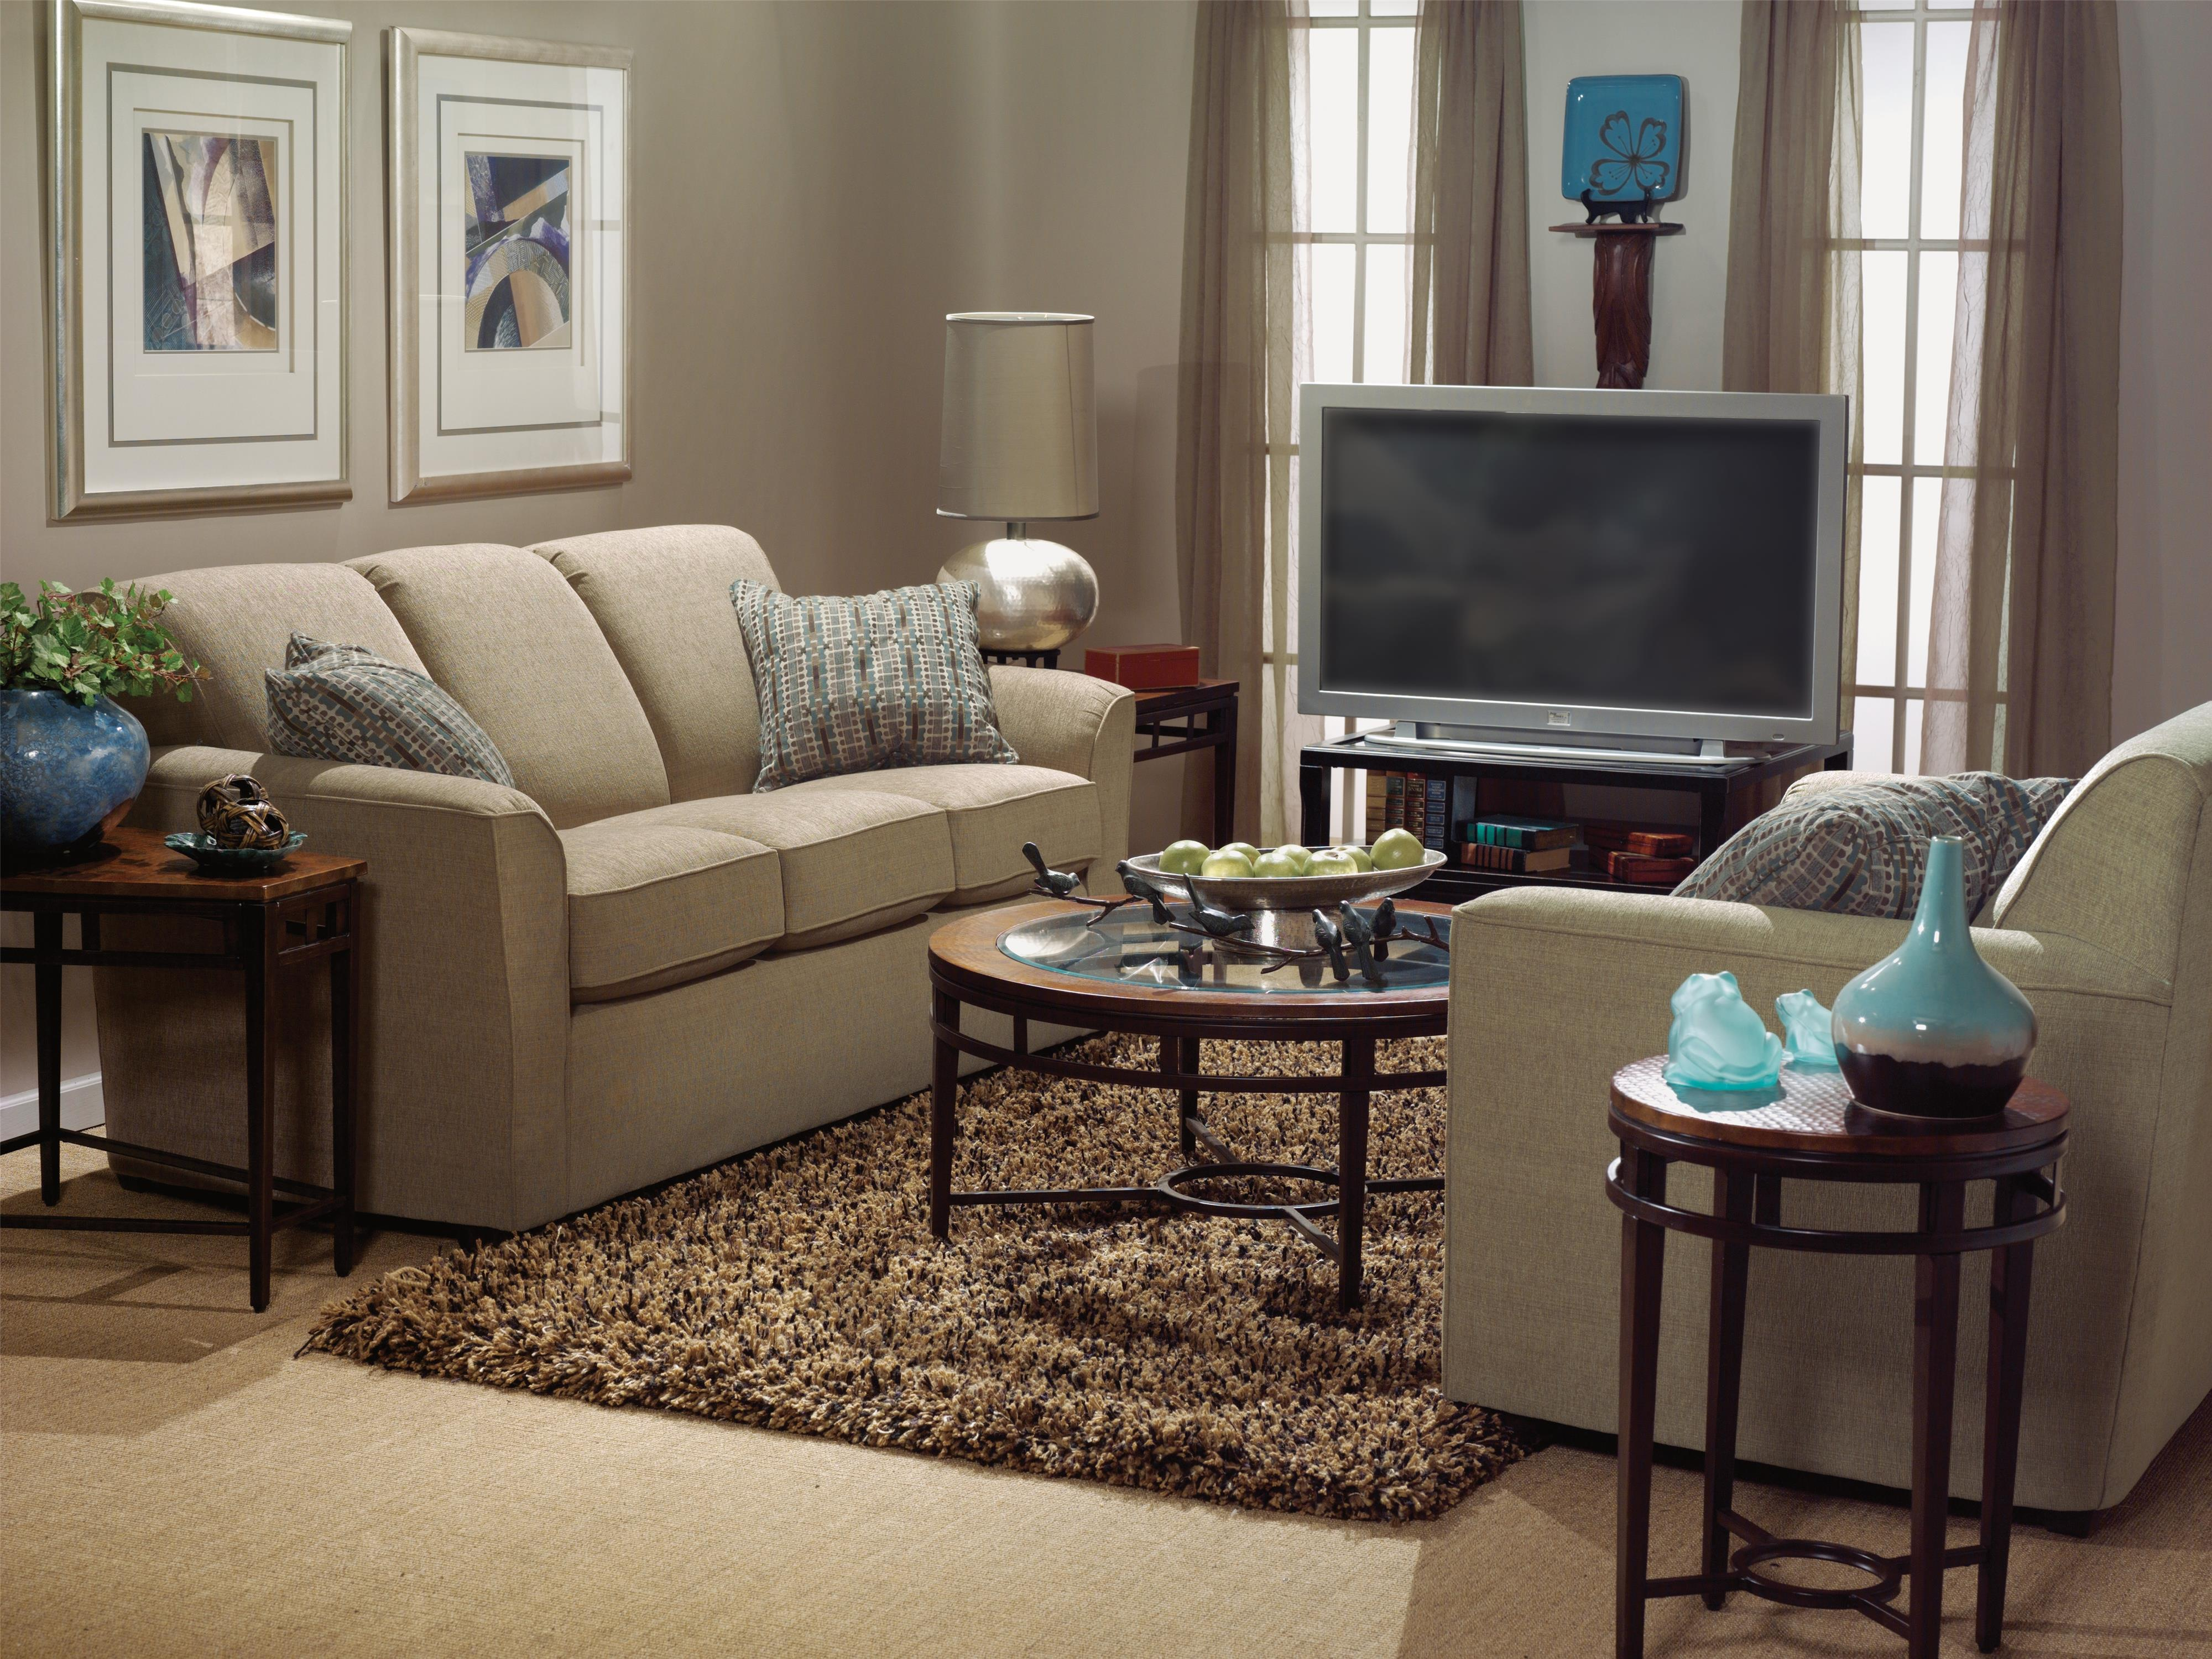 Flexsteel Lakewood Stationary Living Room Group - Item Number: 5936 Living Room Group 2